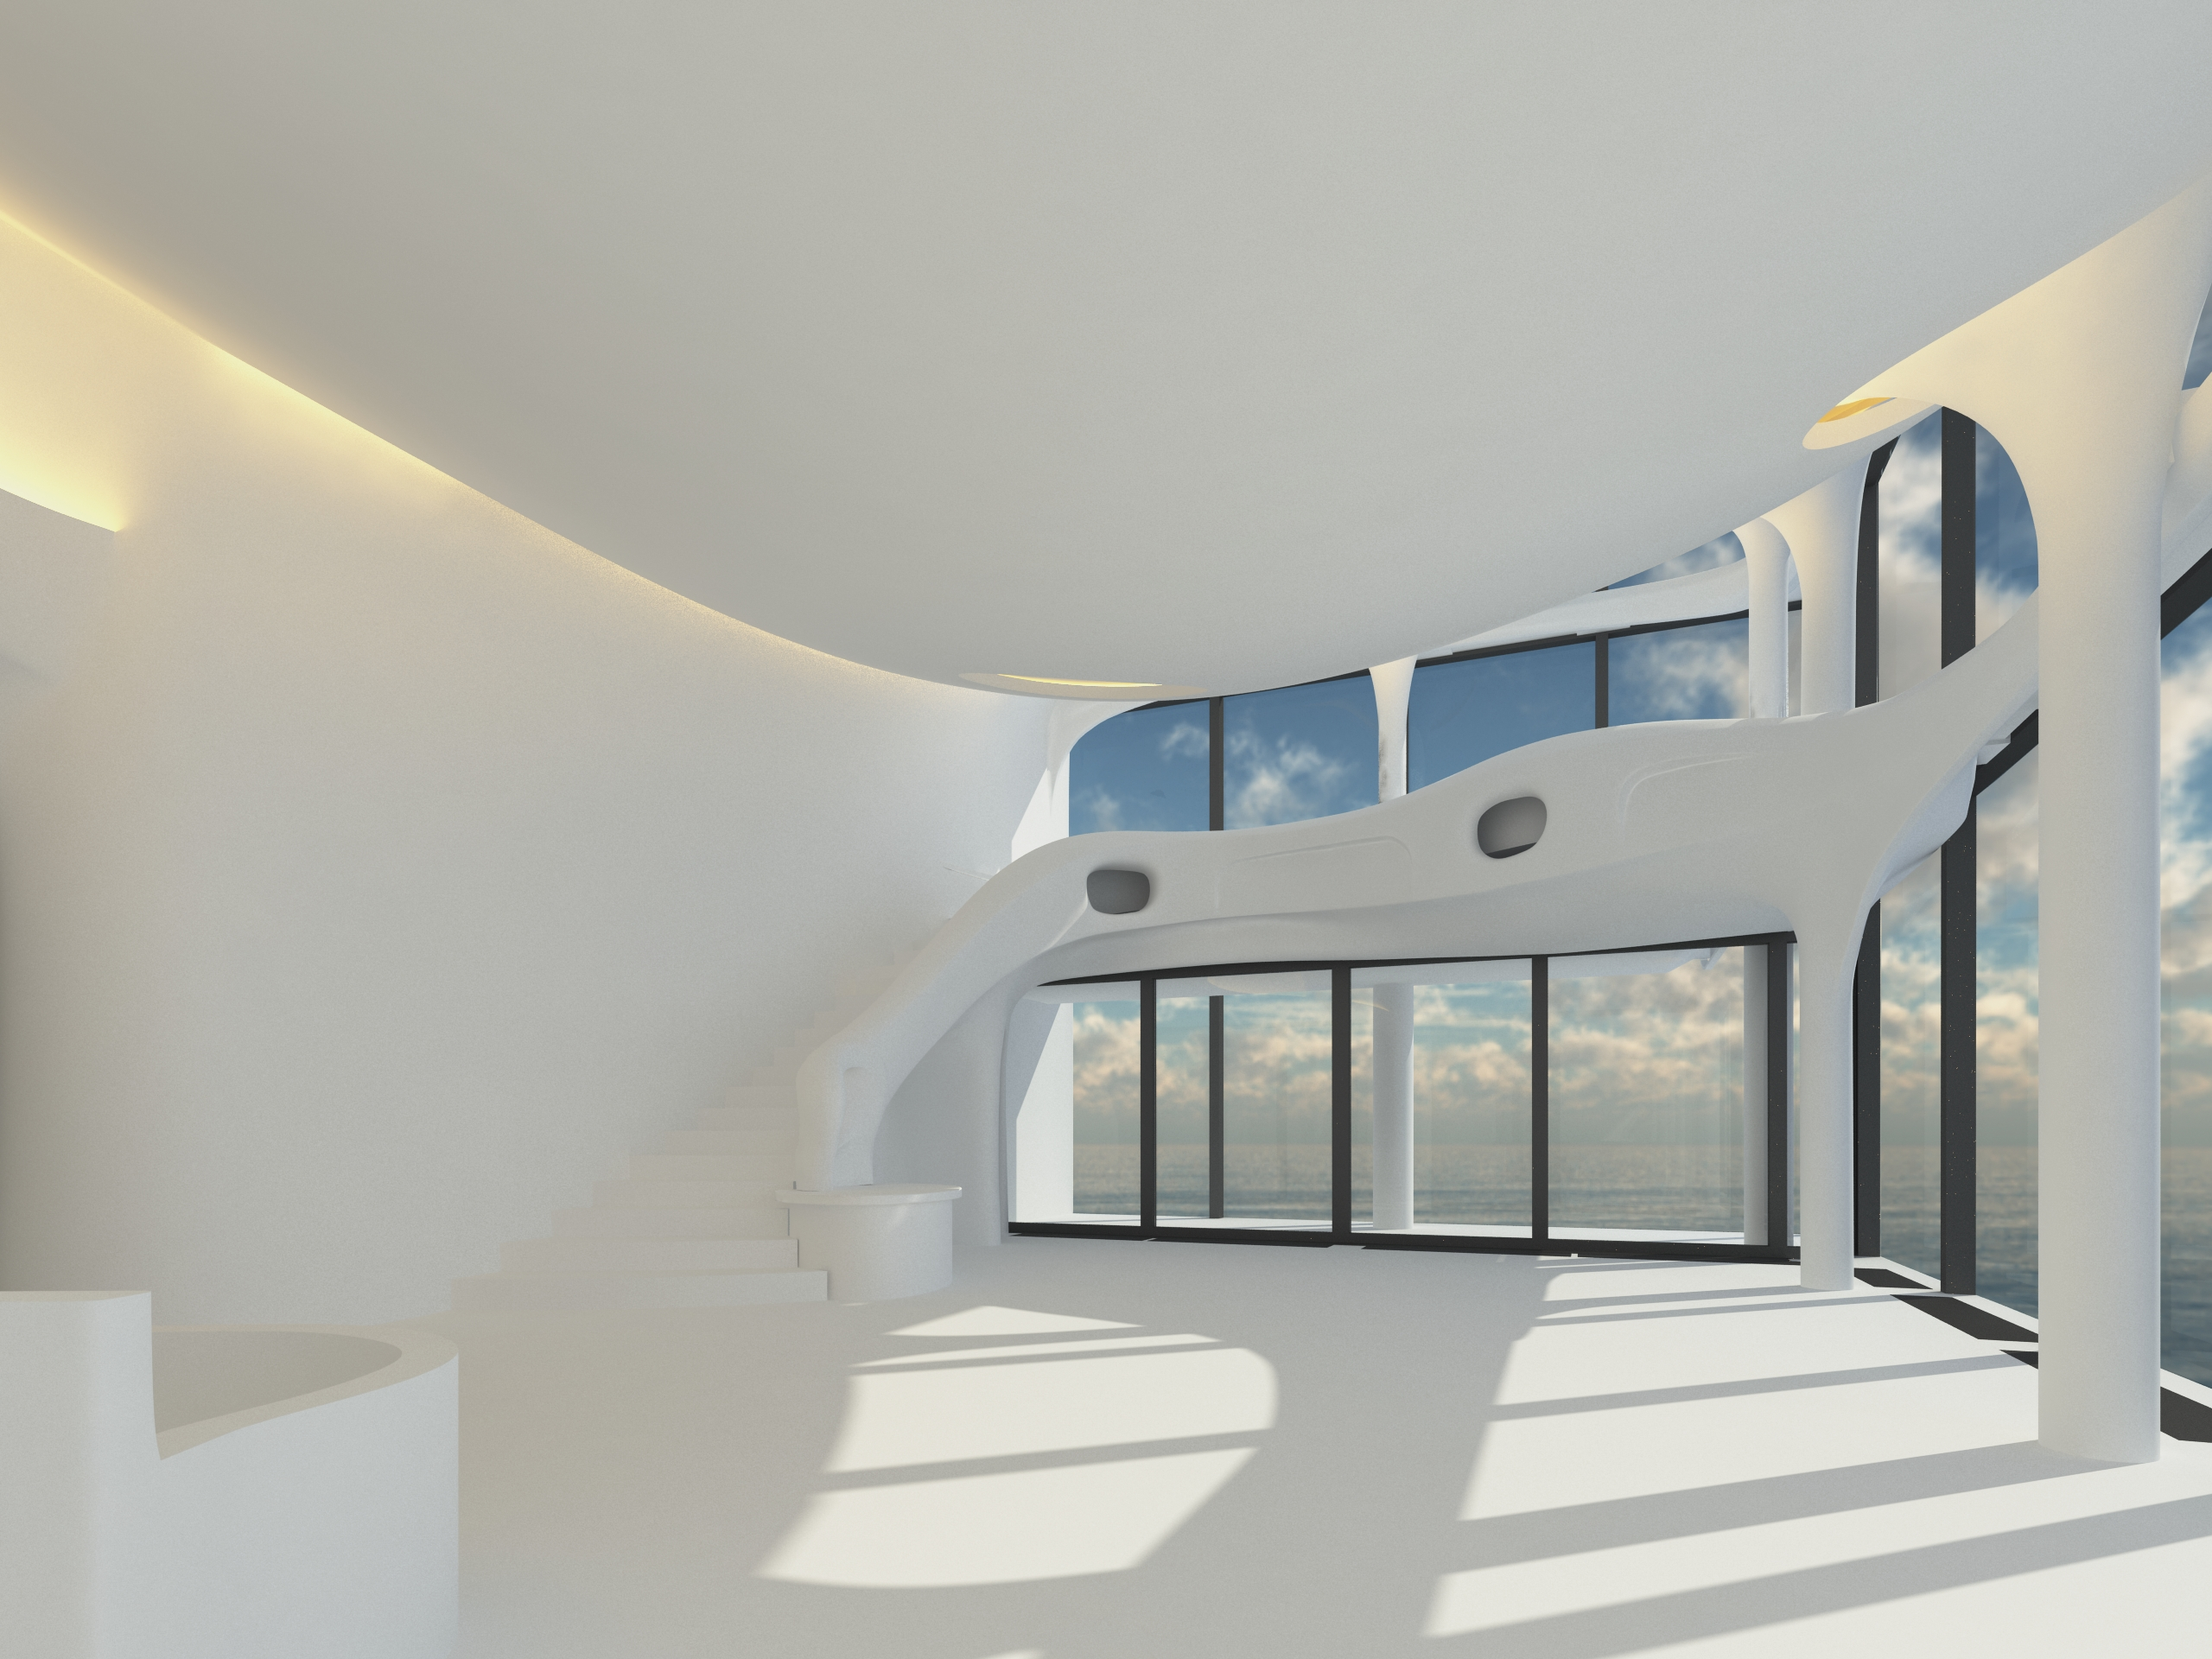 On the 24th and 25th floors of Herzog & De Meuron's acclaimed Elbphilharmonie building in Hamburg, Ge